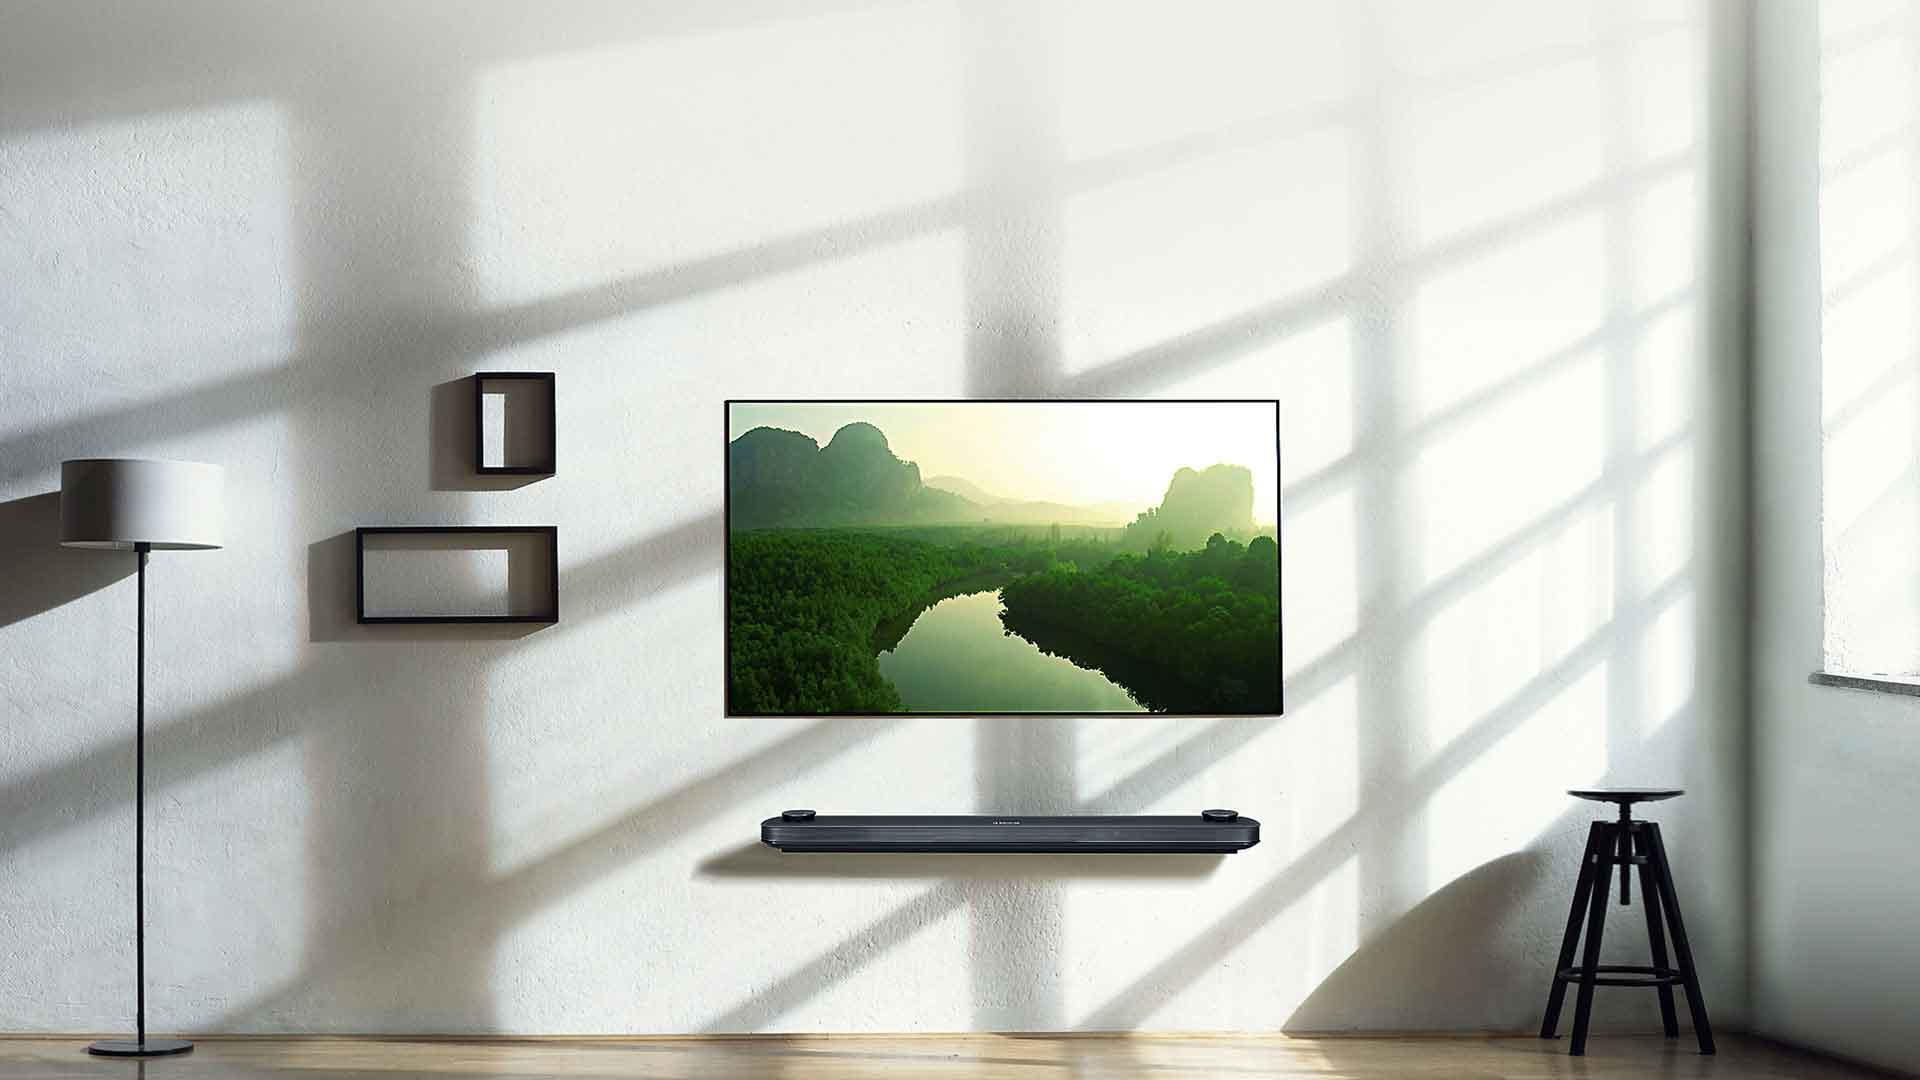 LG Launch New 4K HDR OLEDs for 2017